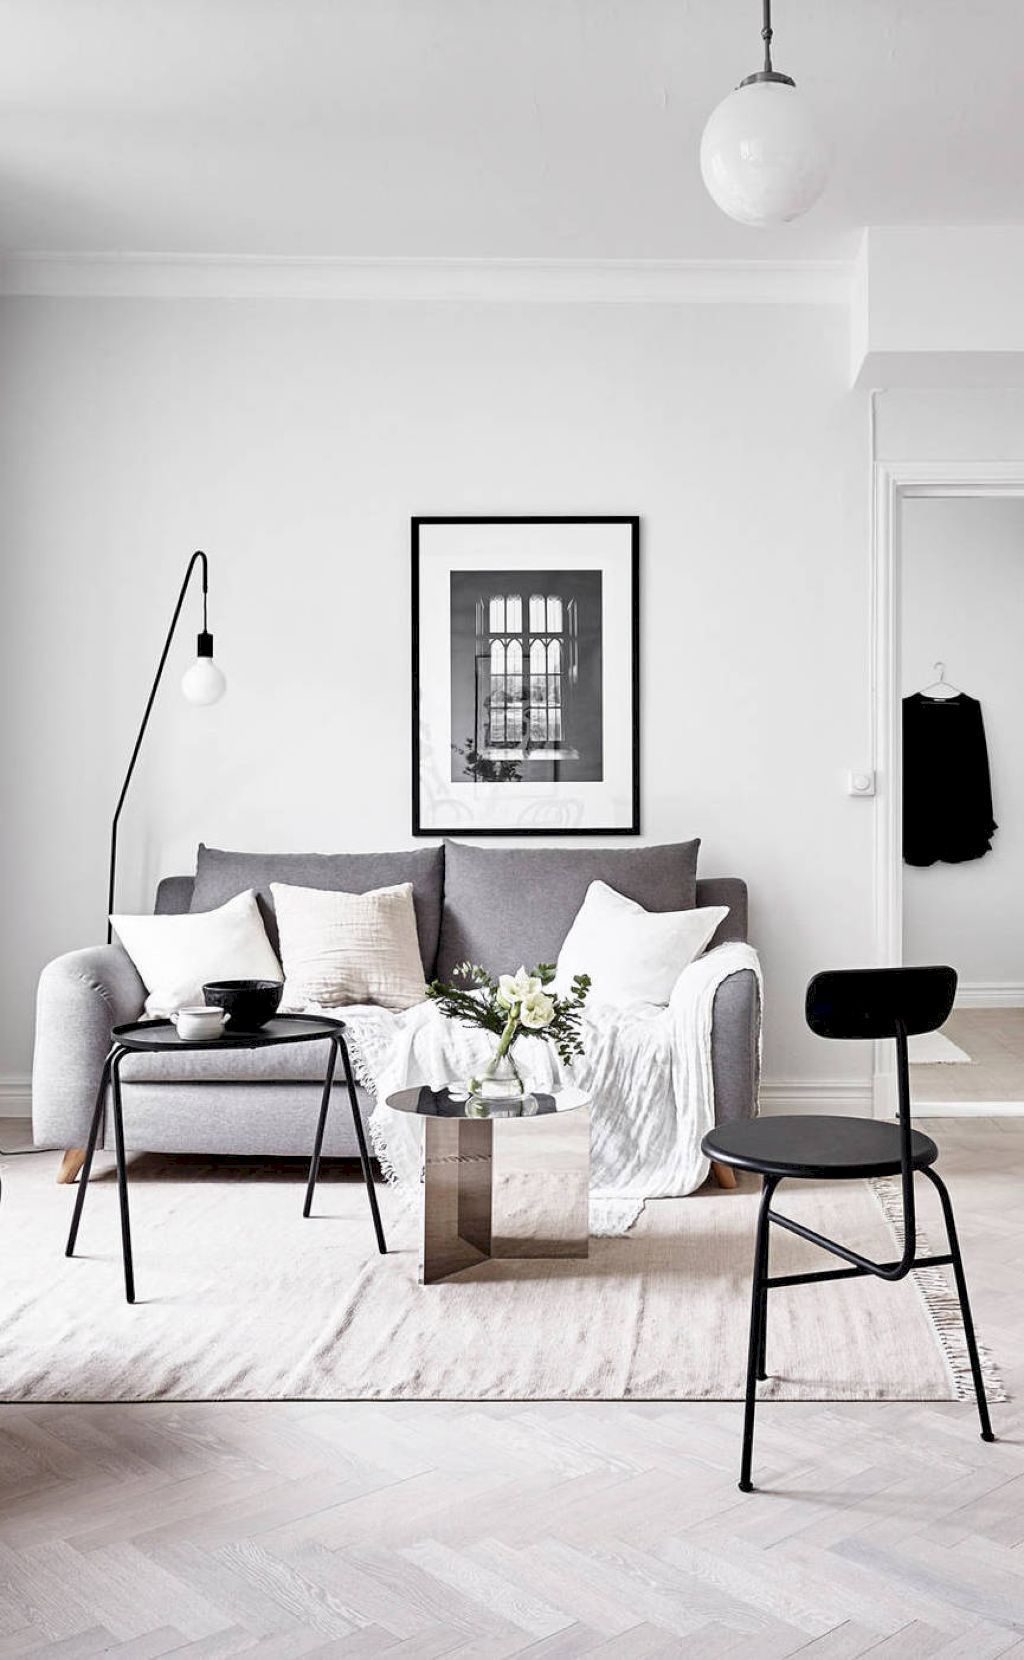 45 Genius Ideas To Design And Create Gorgeous Spaces For Your